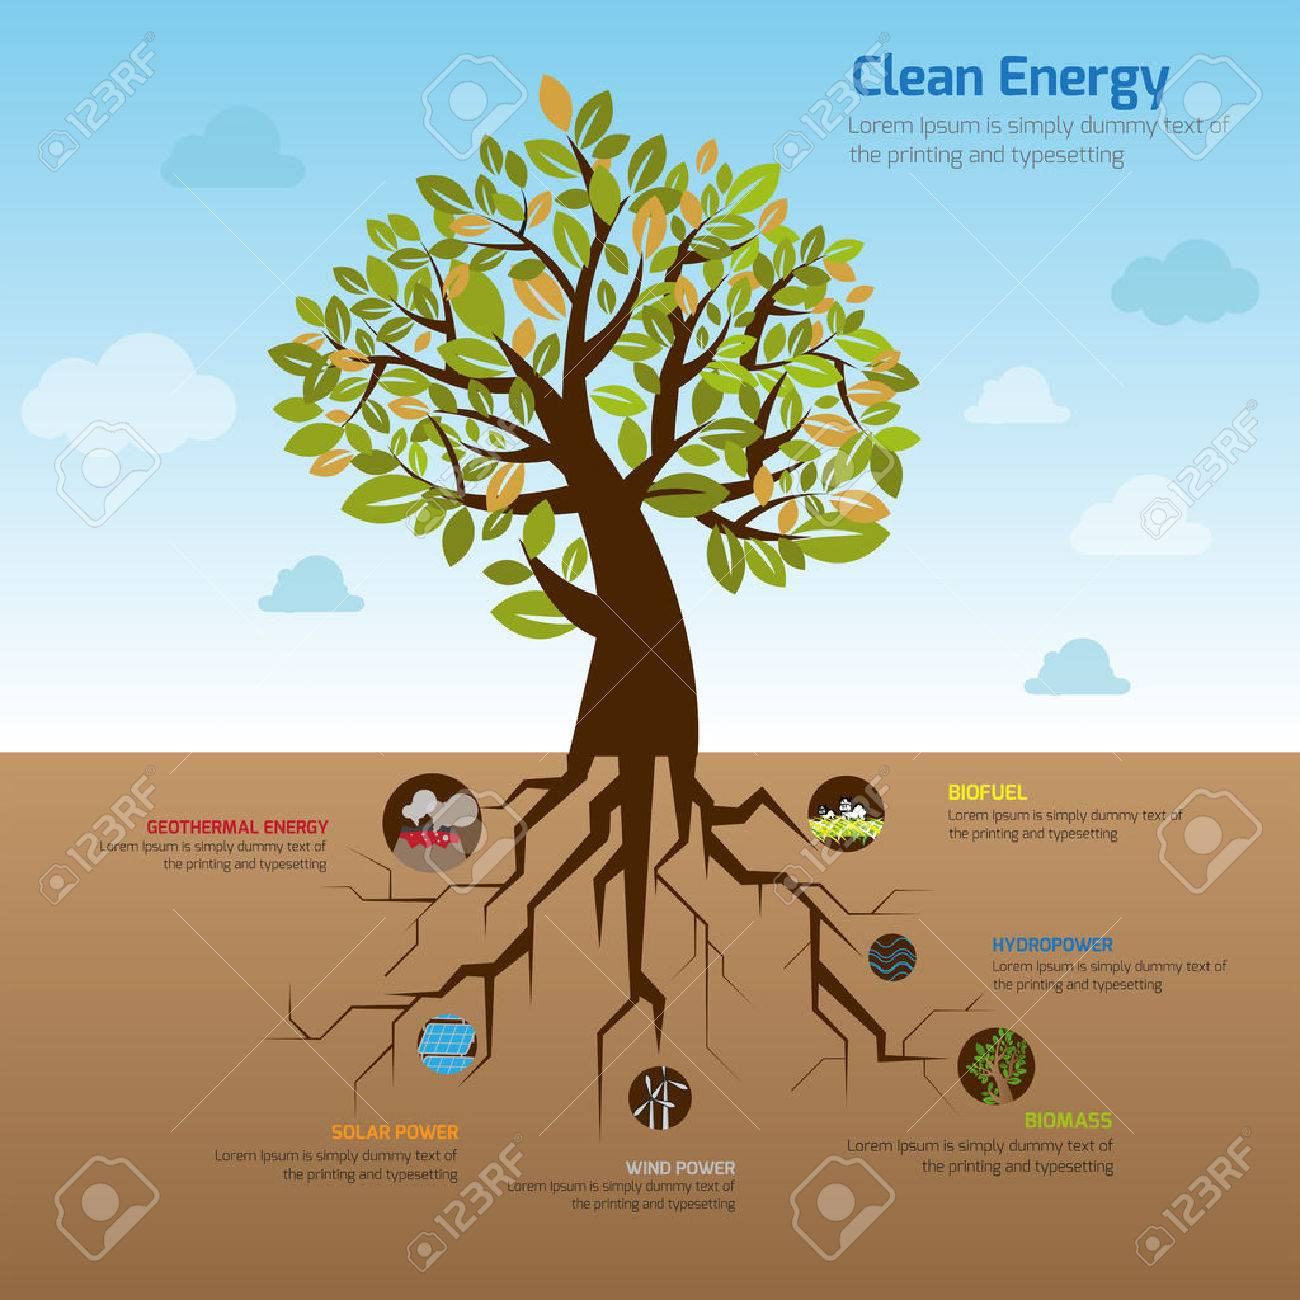 hight resolution of illustration tree and it u0027s wide spread root representing cleanillustration tree and it u0027s